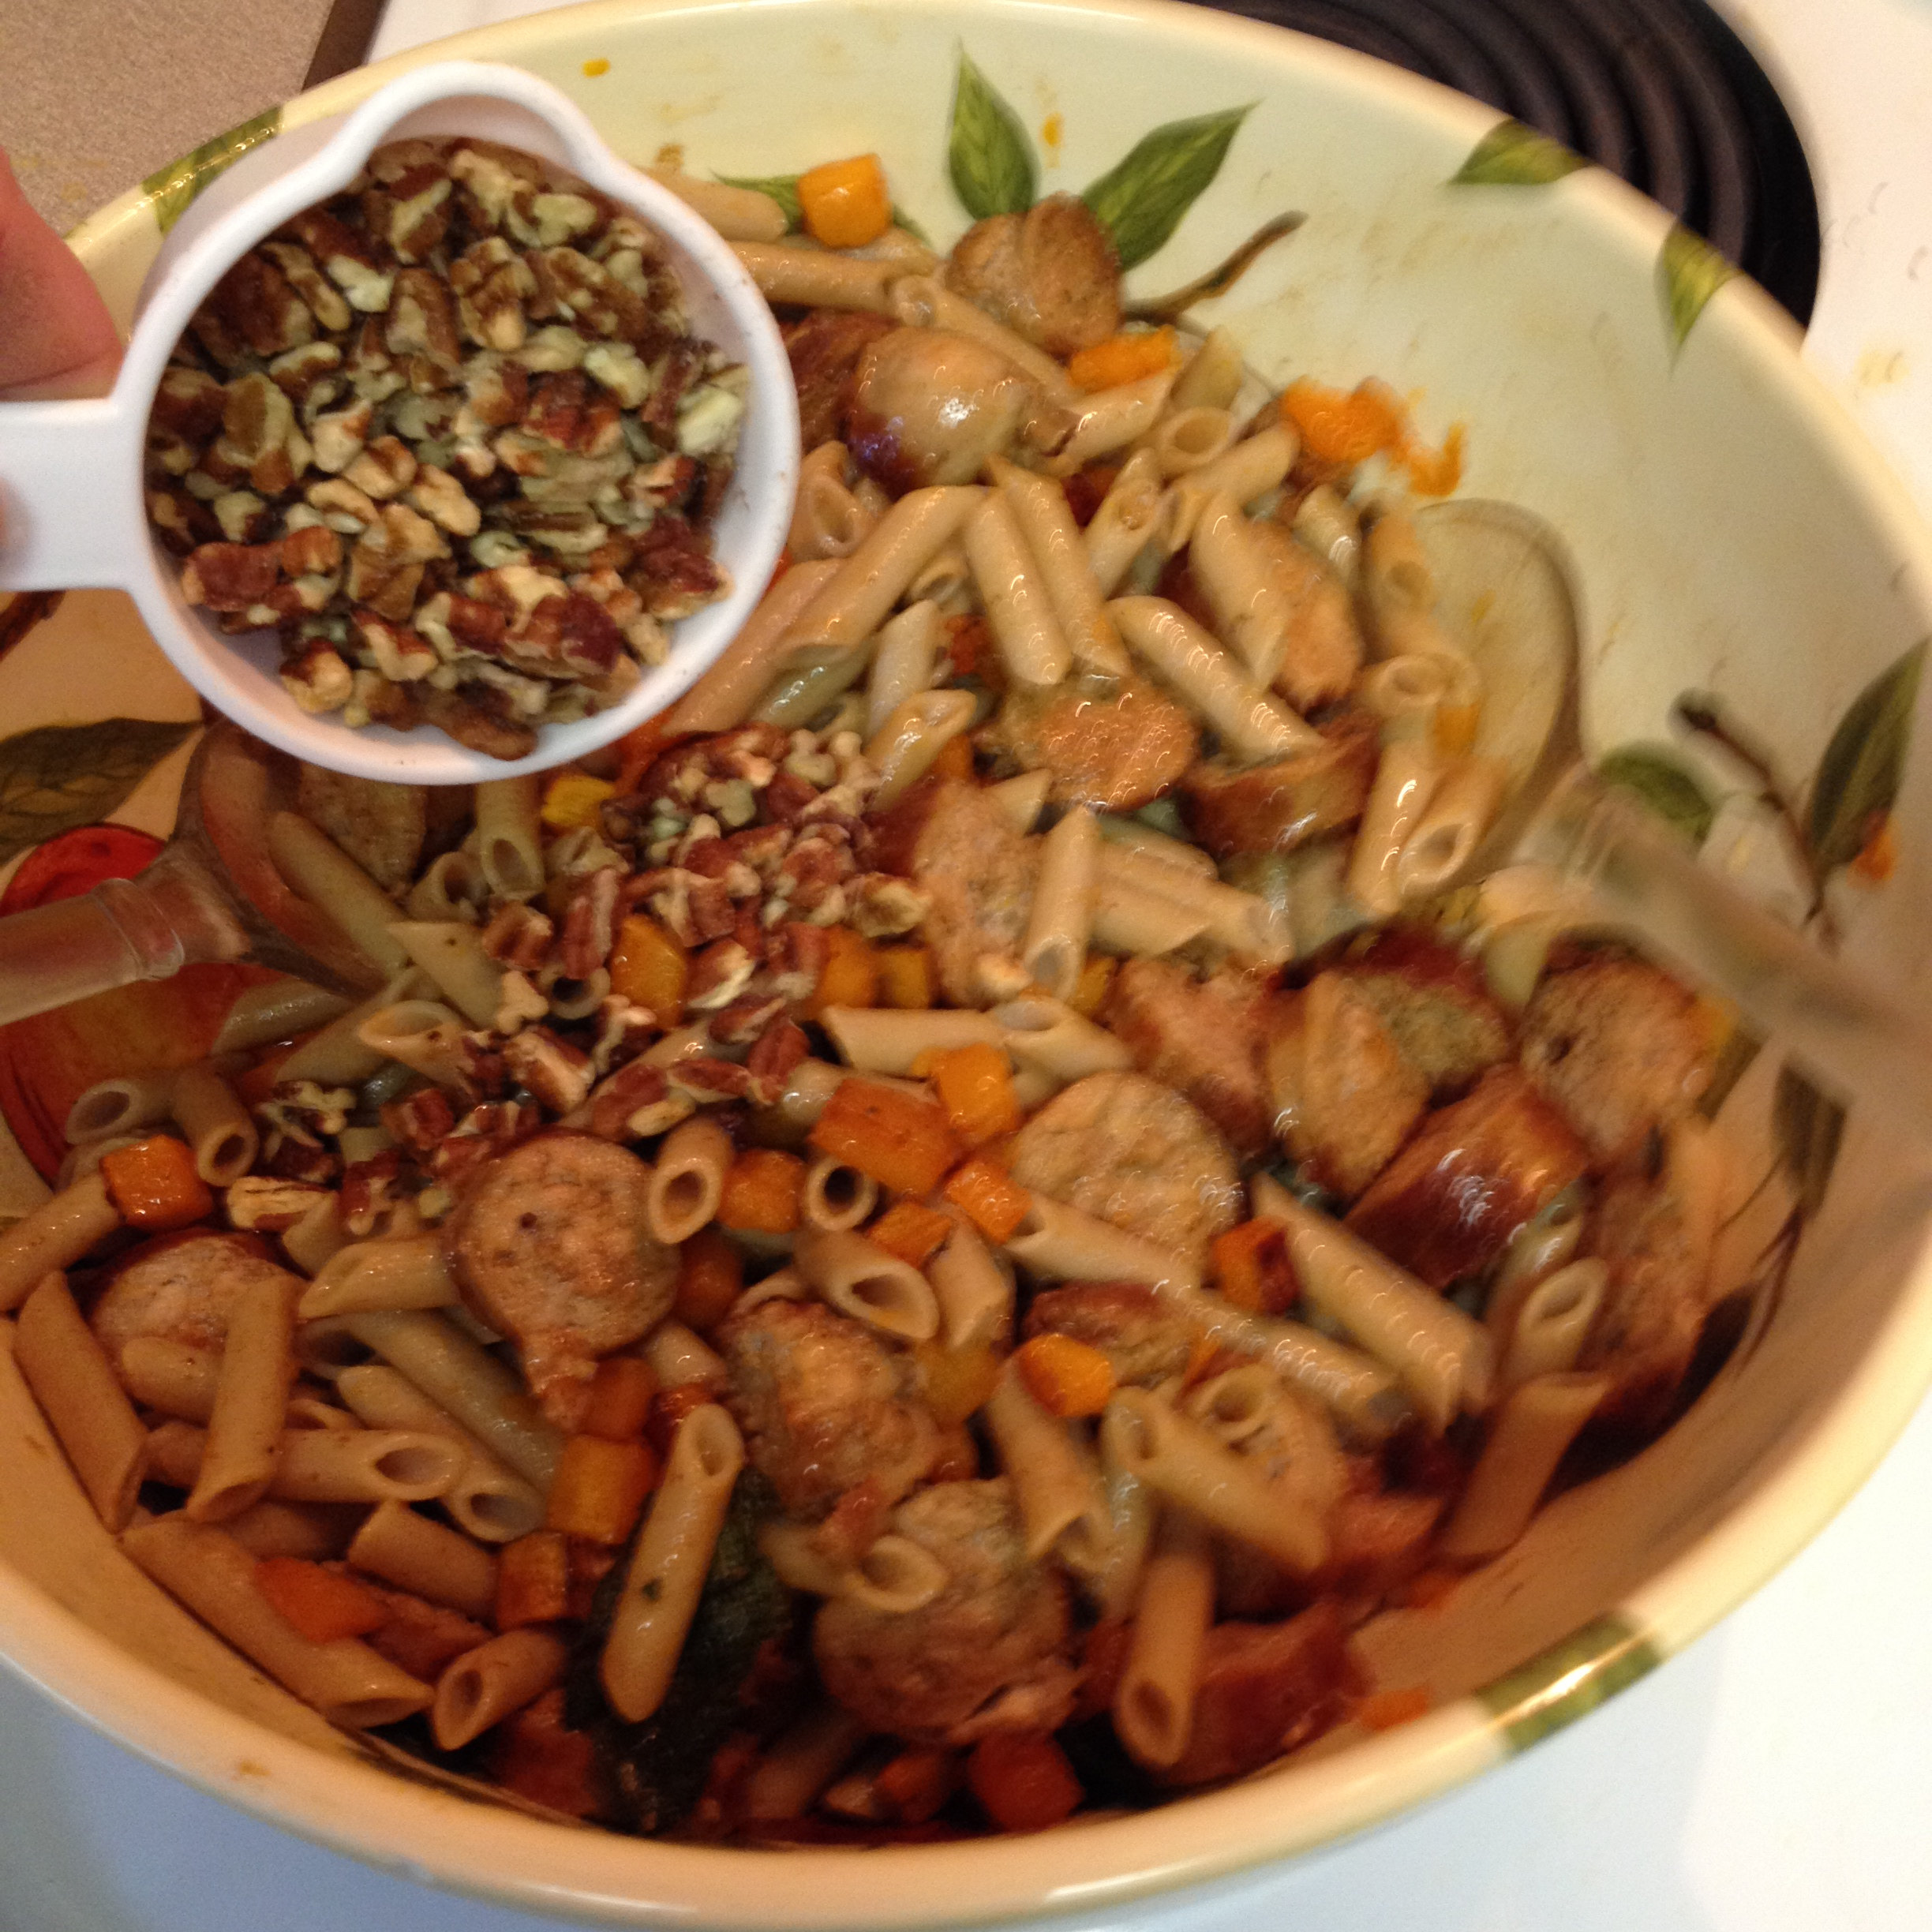 ... pasta, toss to mix well. Sprinkle pecan pieces over top and mix in